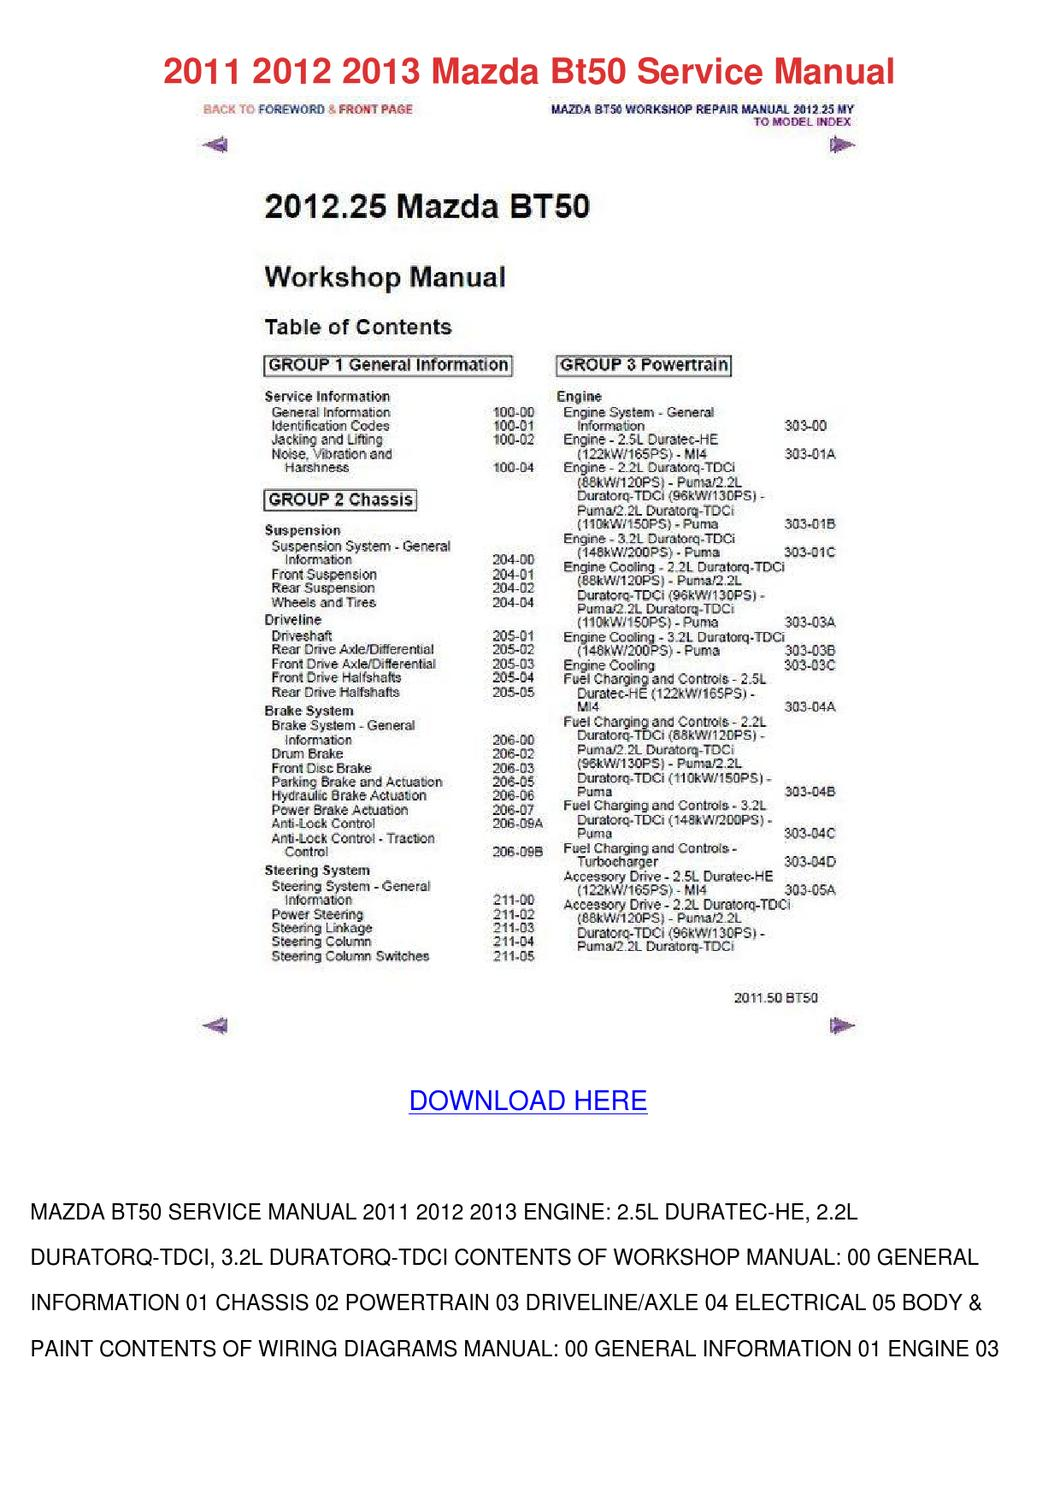 2011 2012 2013 Mazda Bt50 Service Manual by AaronWare - Issuu